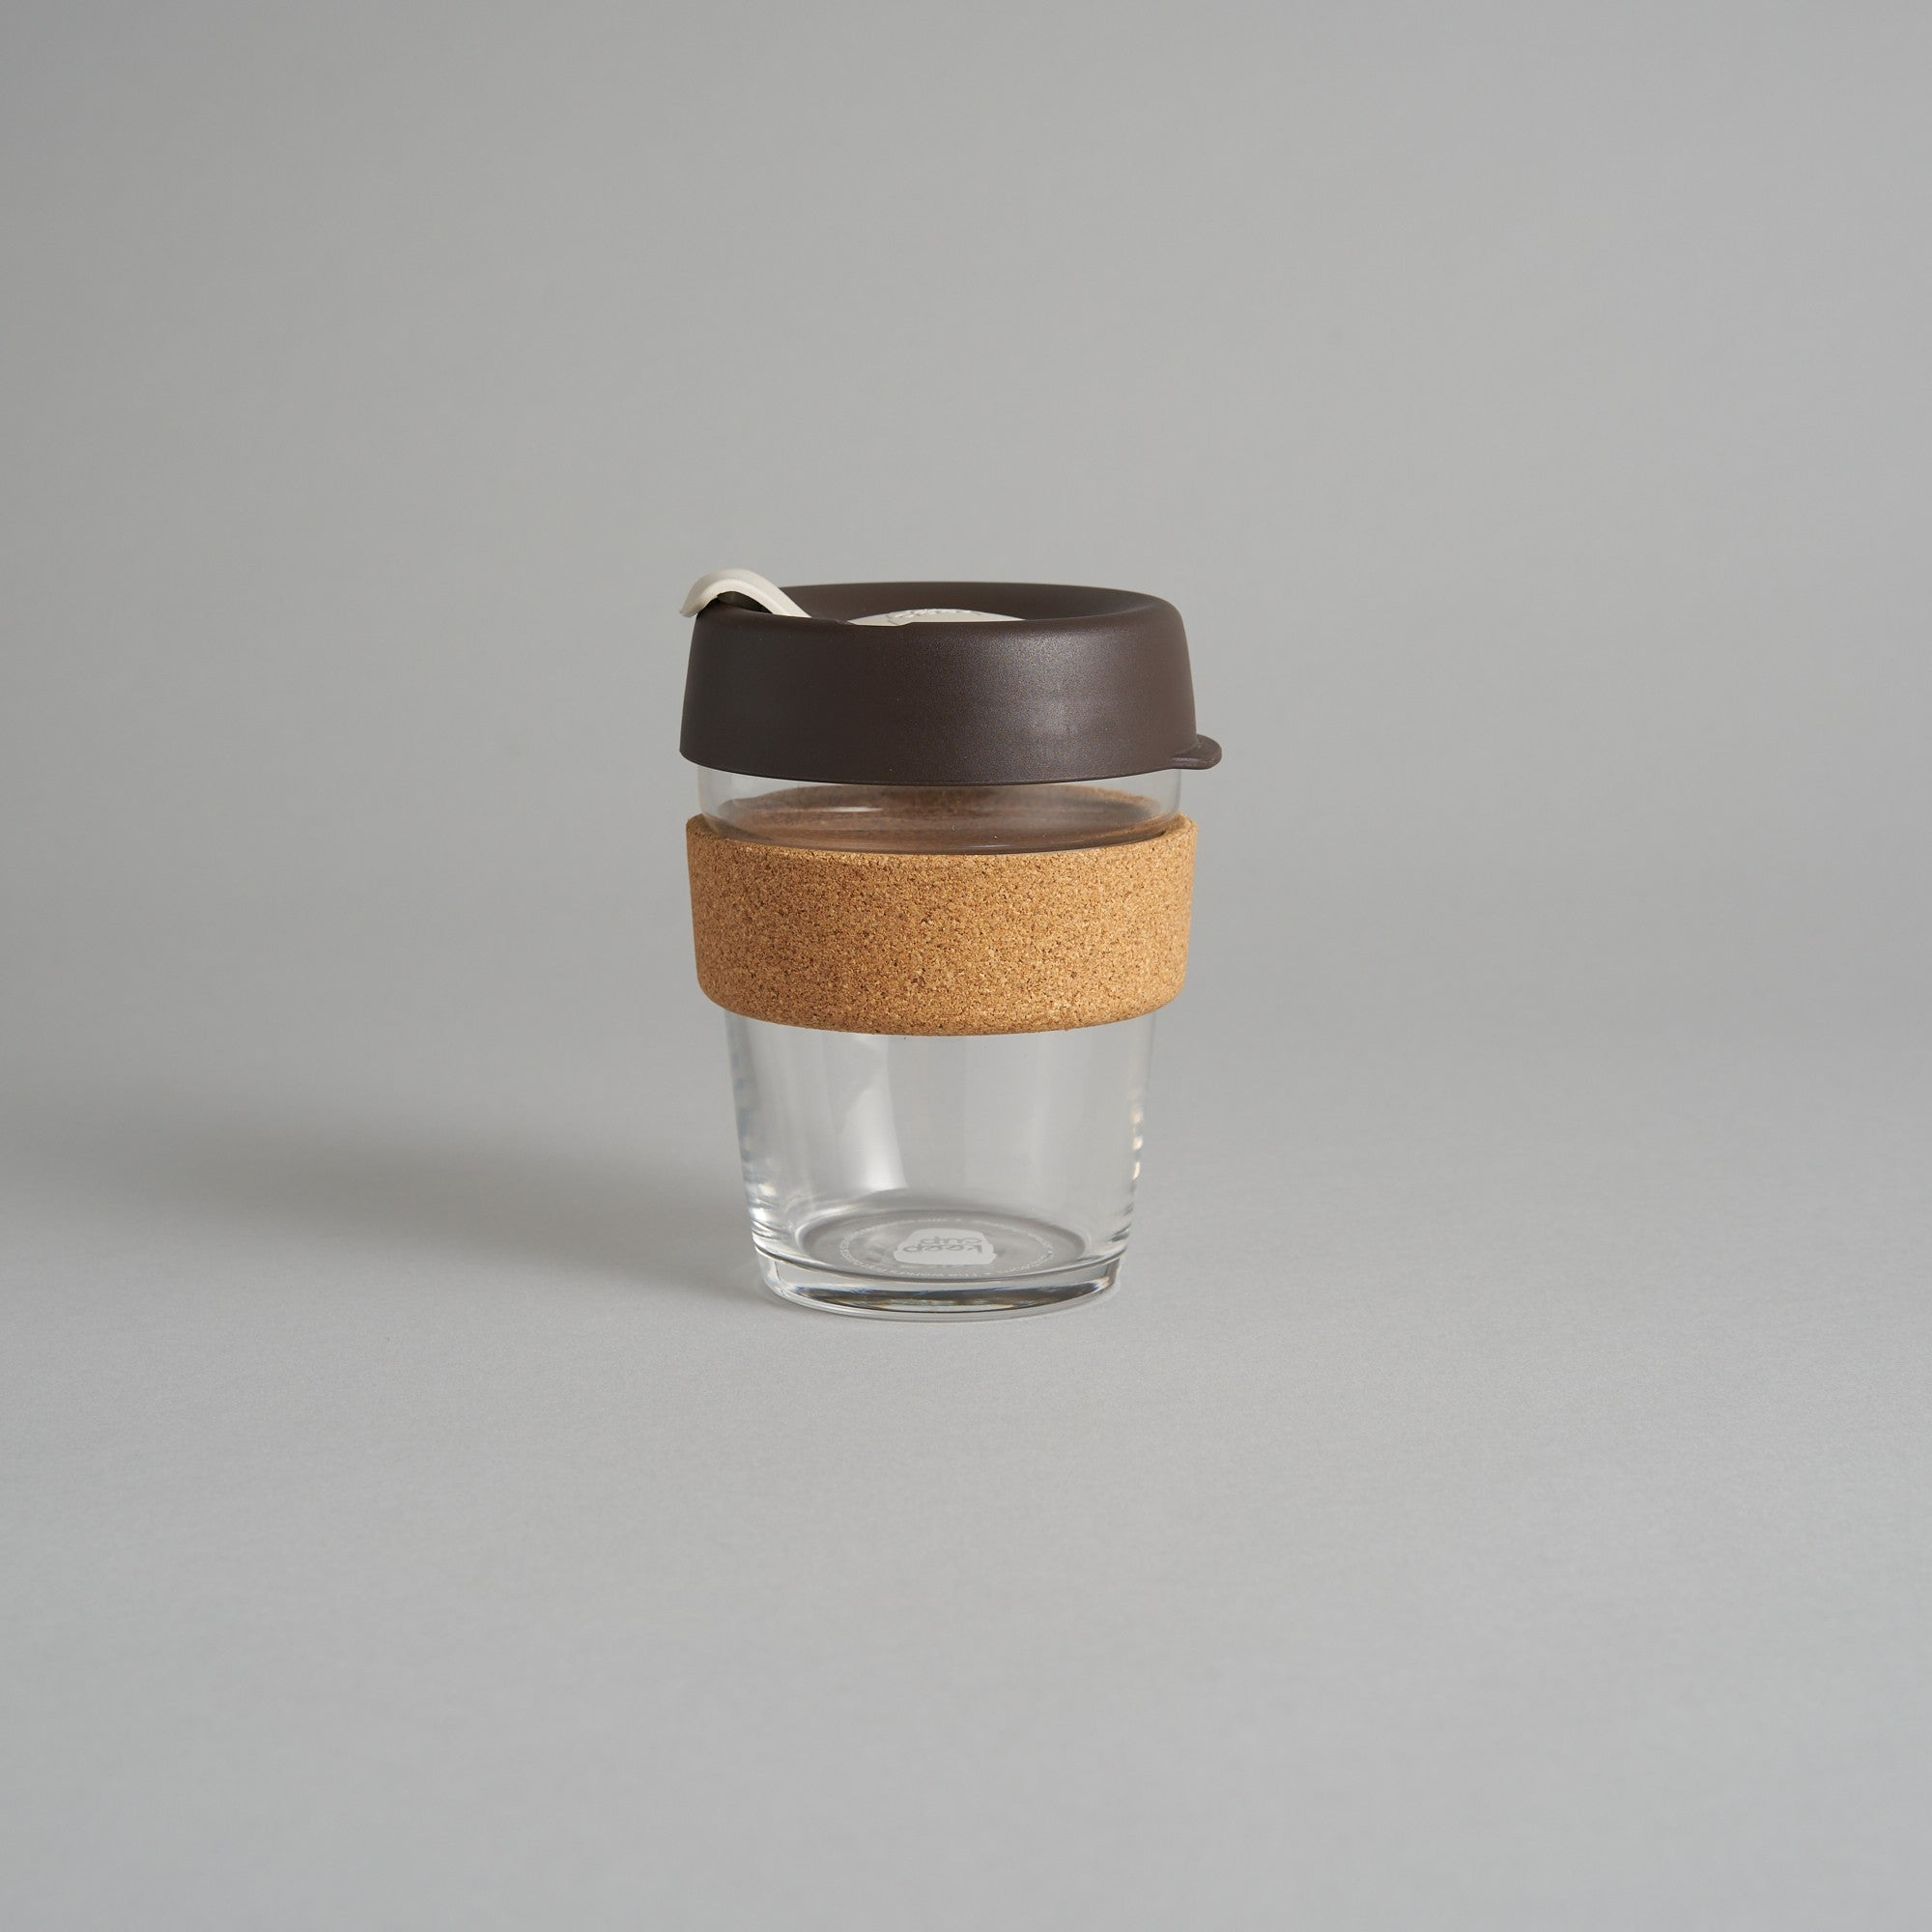 Almond Reusable Coffee Cup by KeepCup